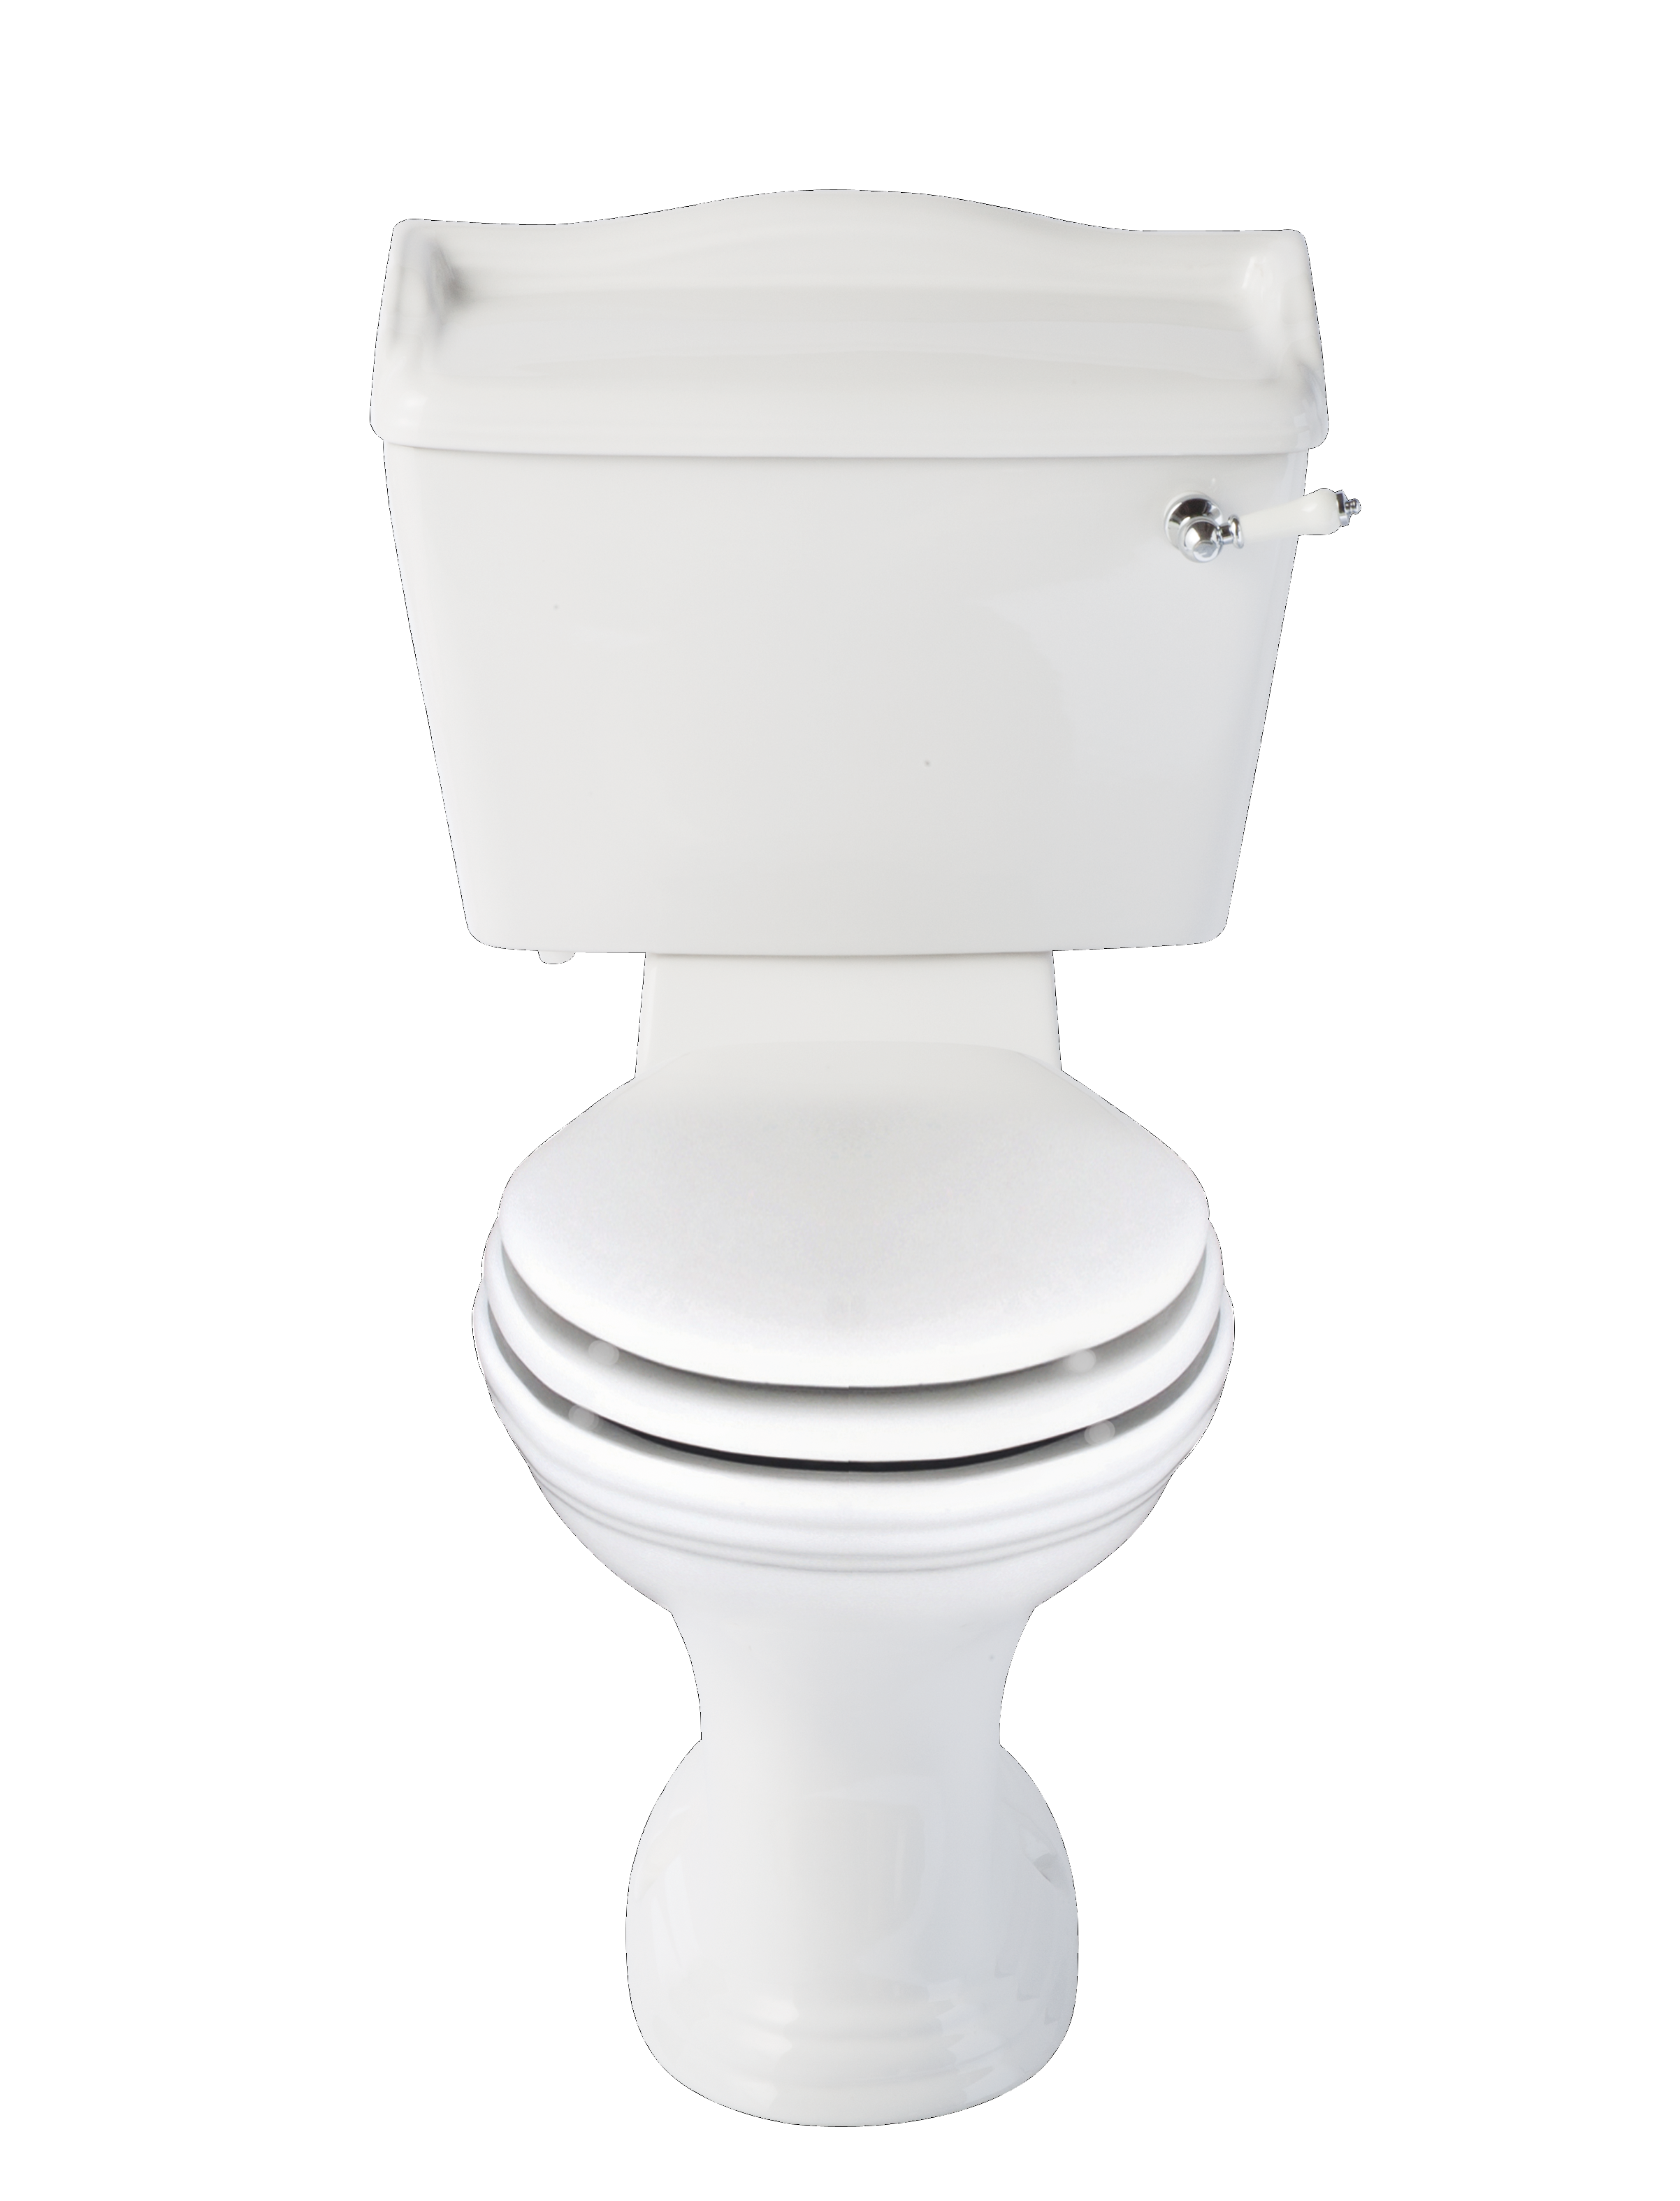 toilet png images are download crazypngm crazy png images download #29237